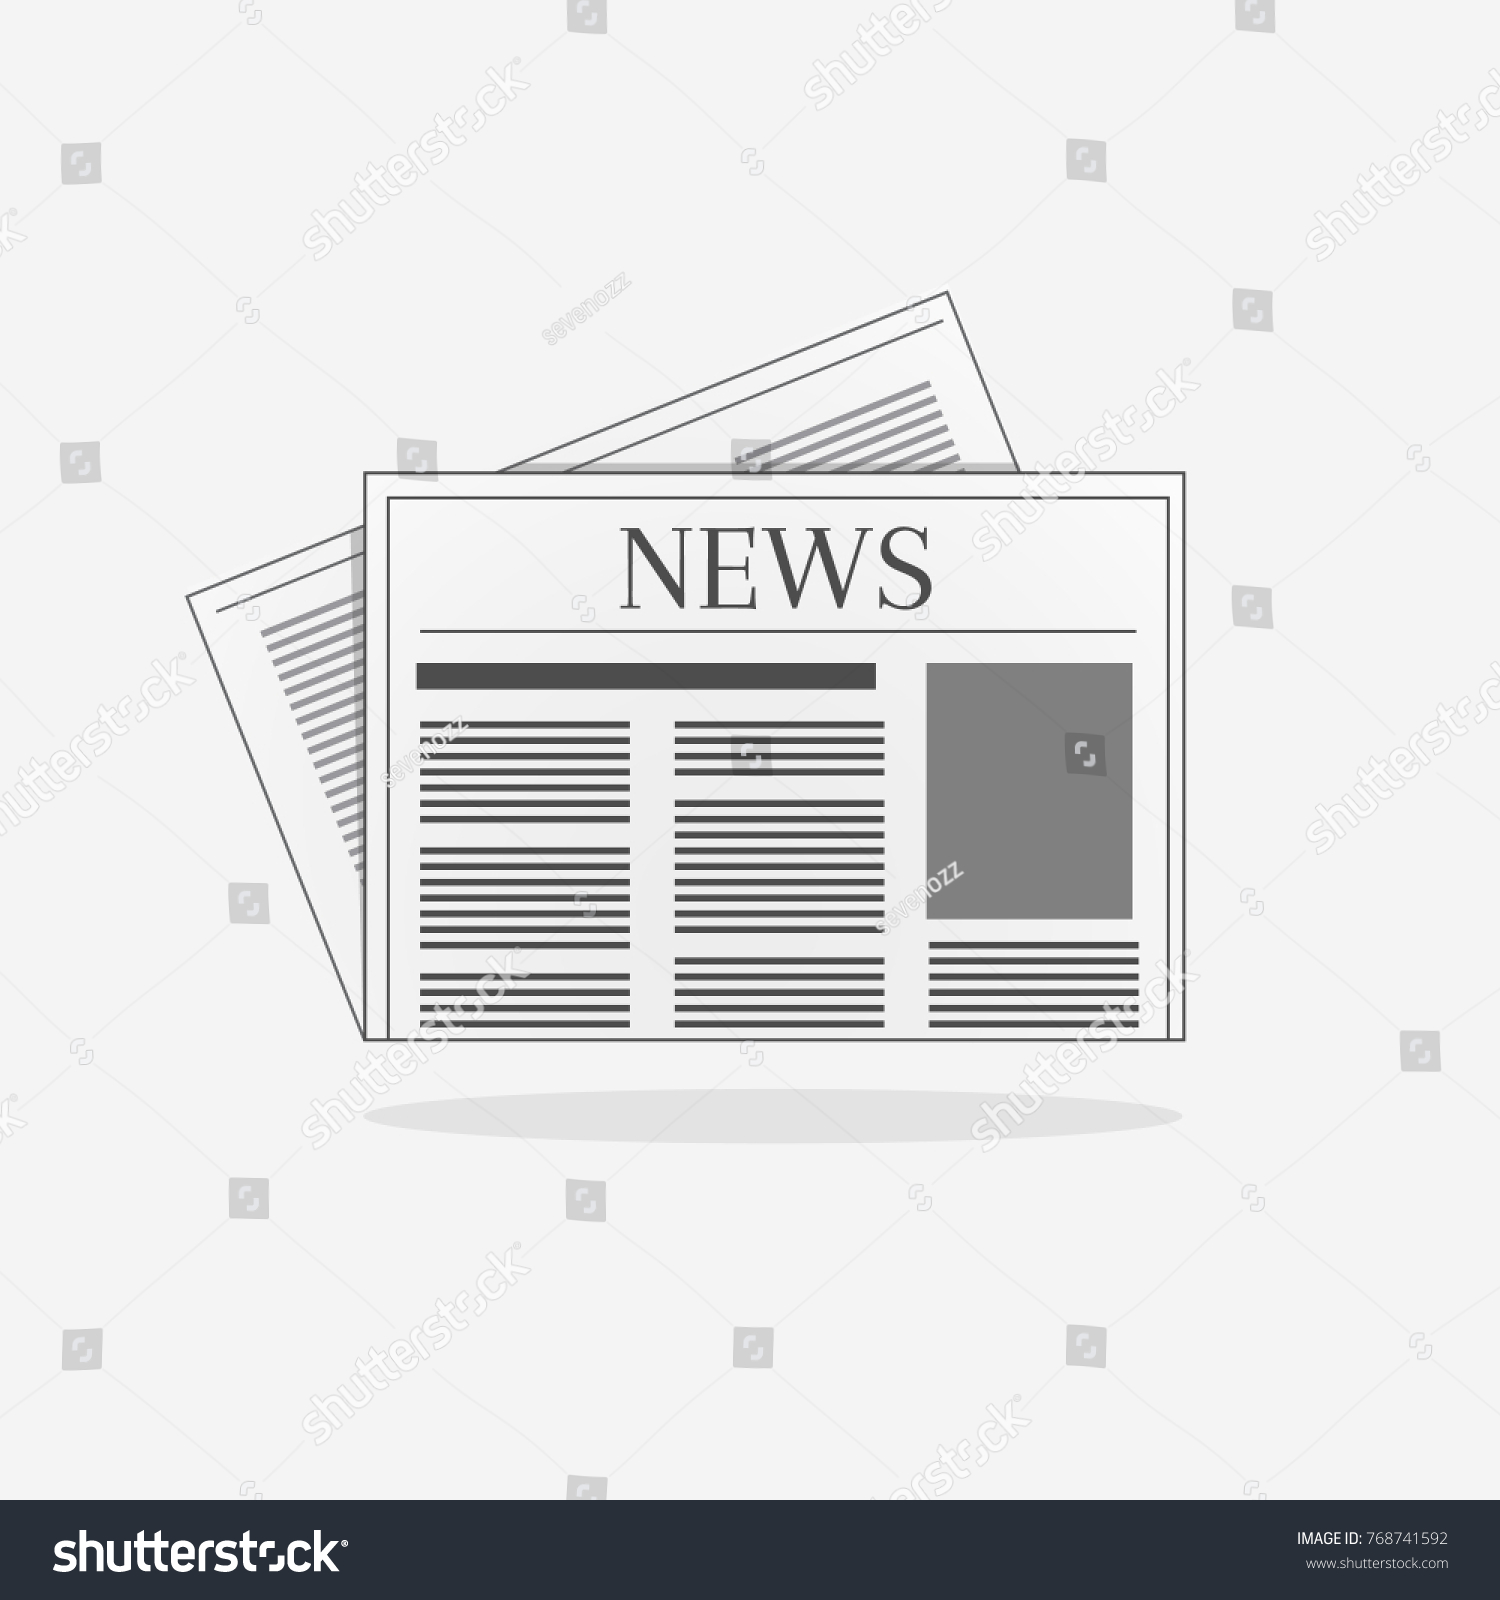 Newspaper Sign Illustration News Page Template Stock Vector Royalty